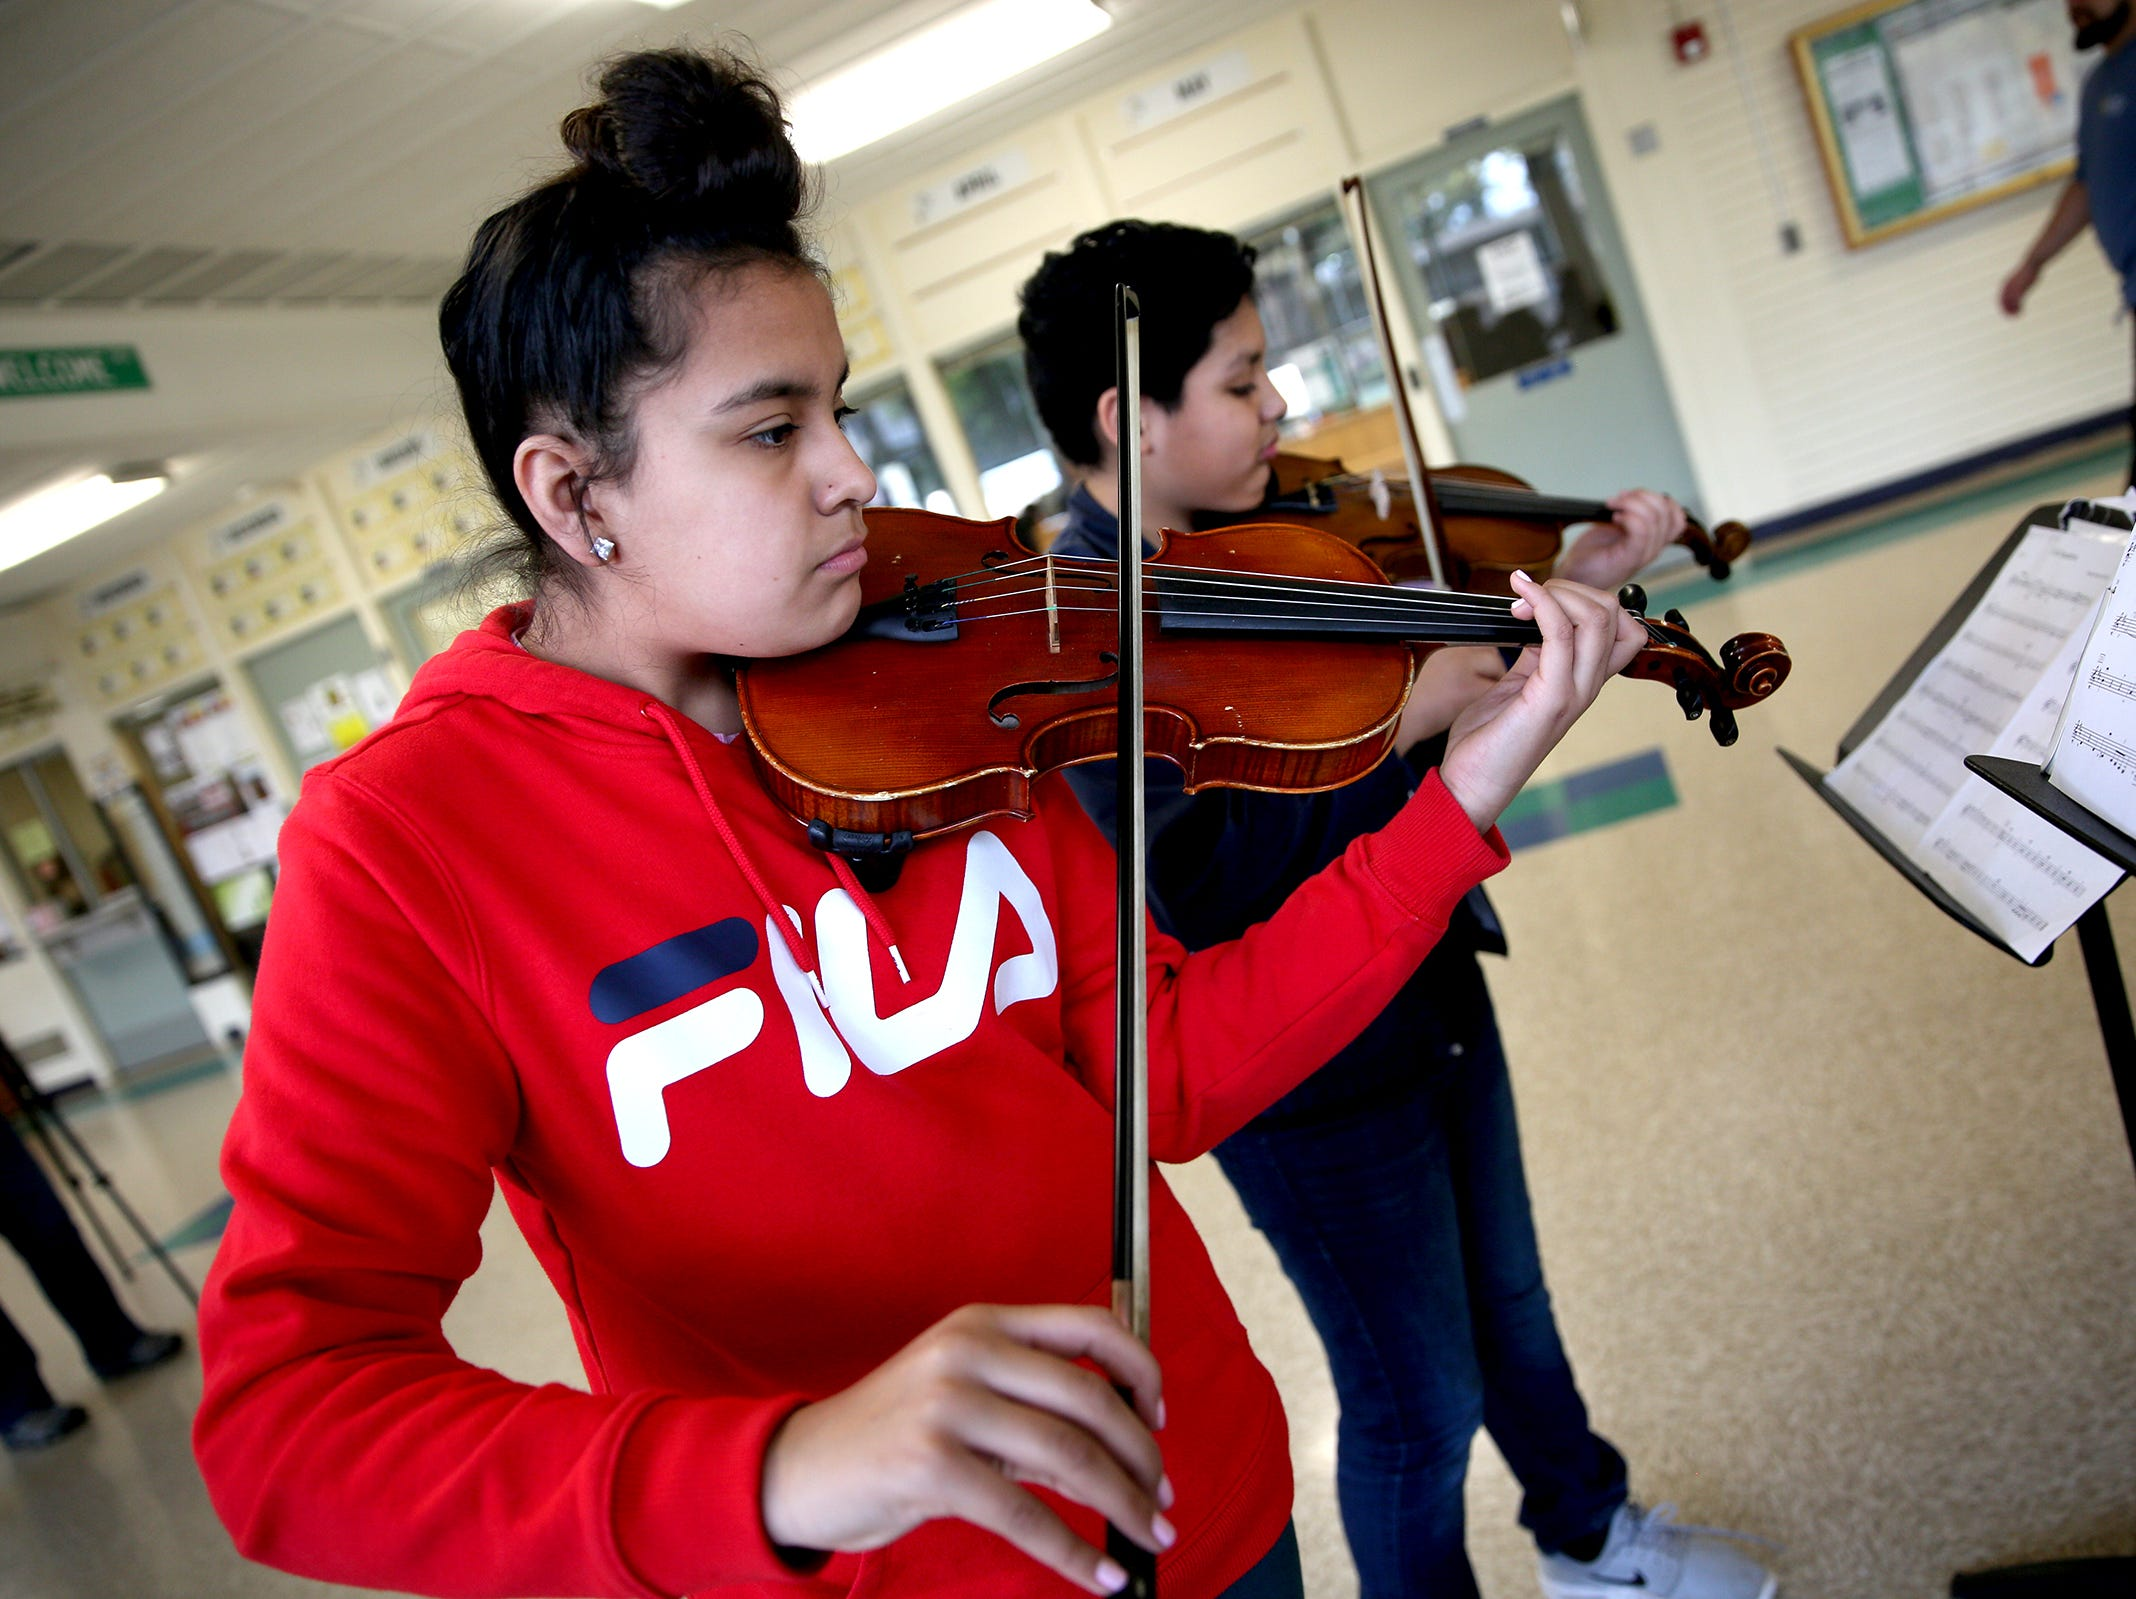 Sixth grade student, Nadia Luna, plays her instrument during a Music Lessons Project class, which offers private or small group lessons to students in Title I schools, at Waldo Middle School on April 19, 2019.